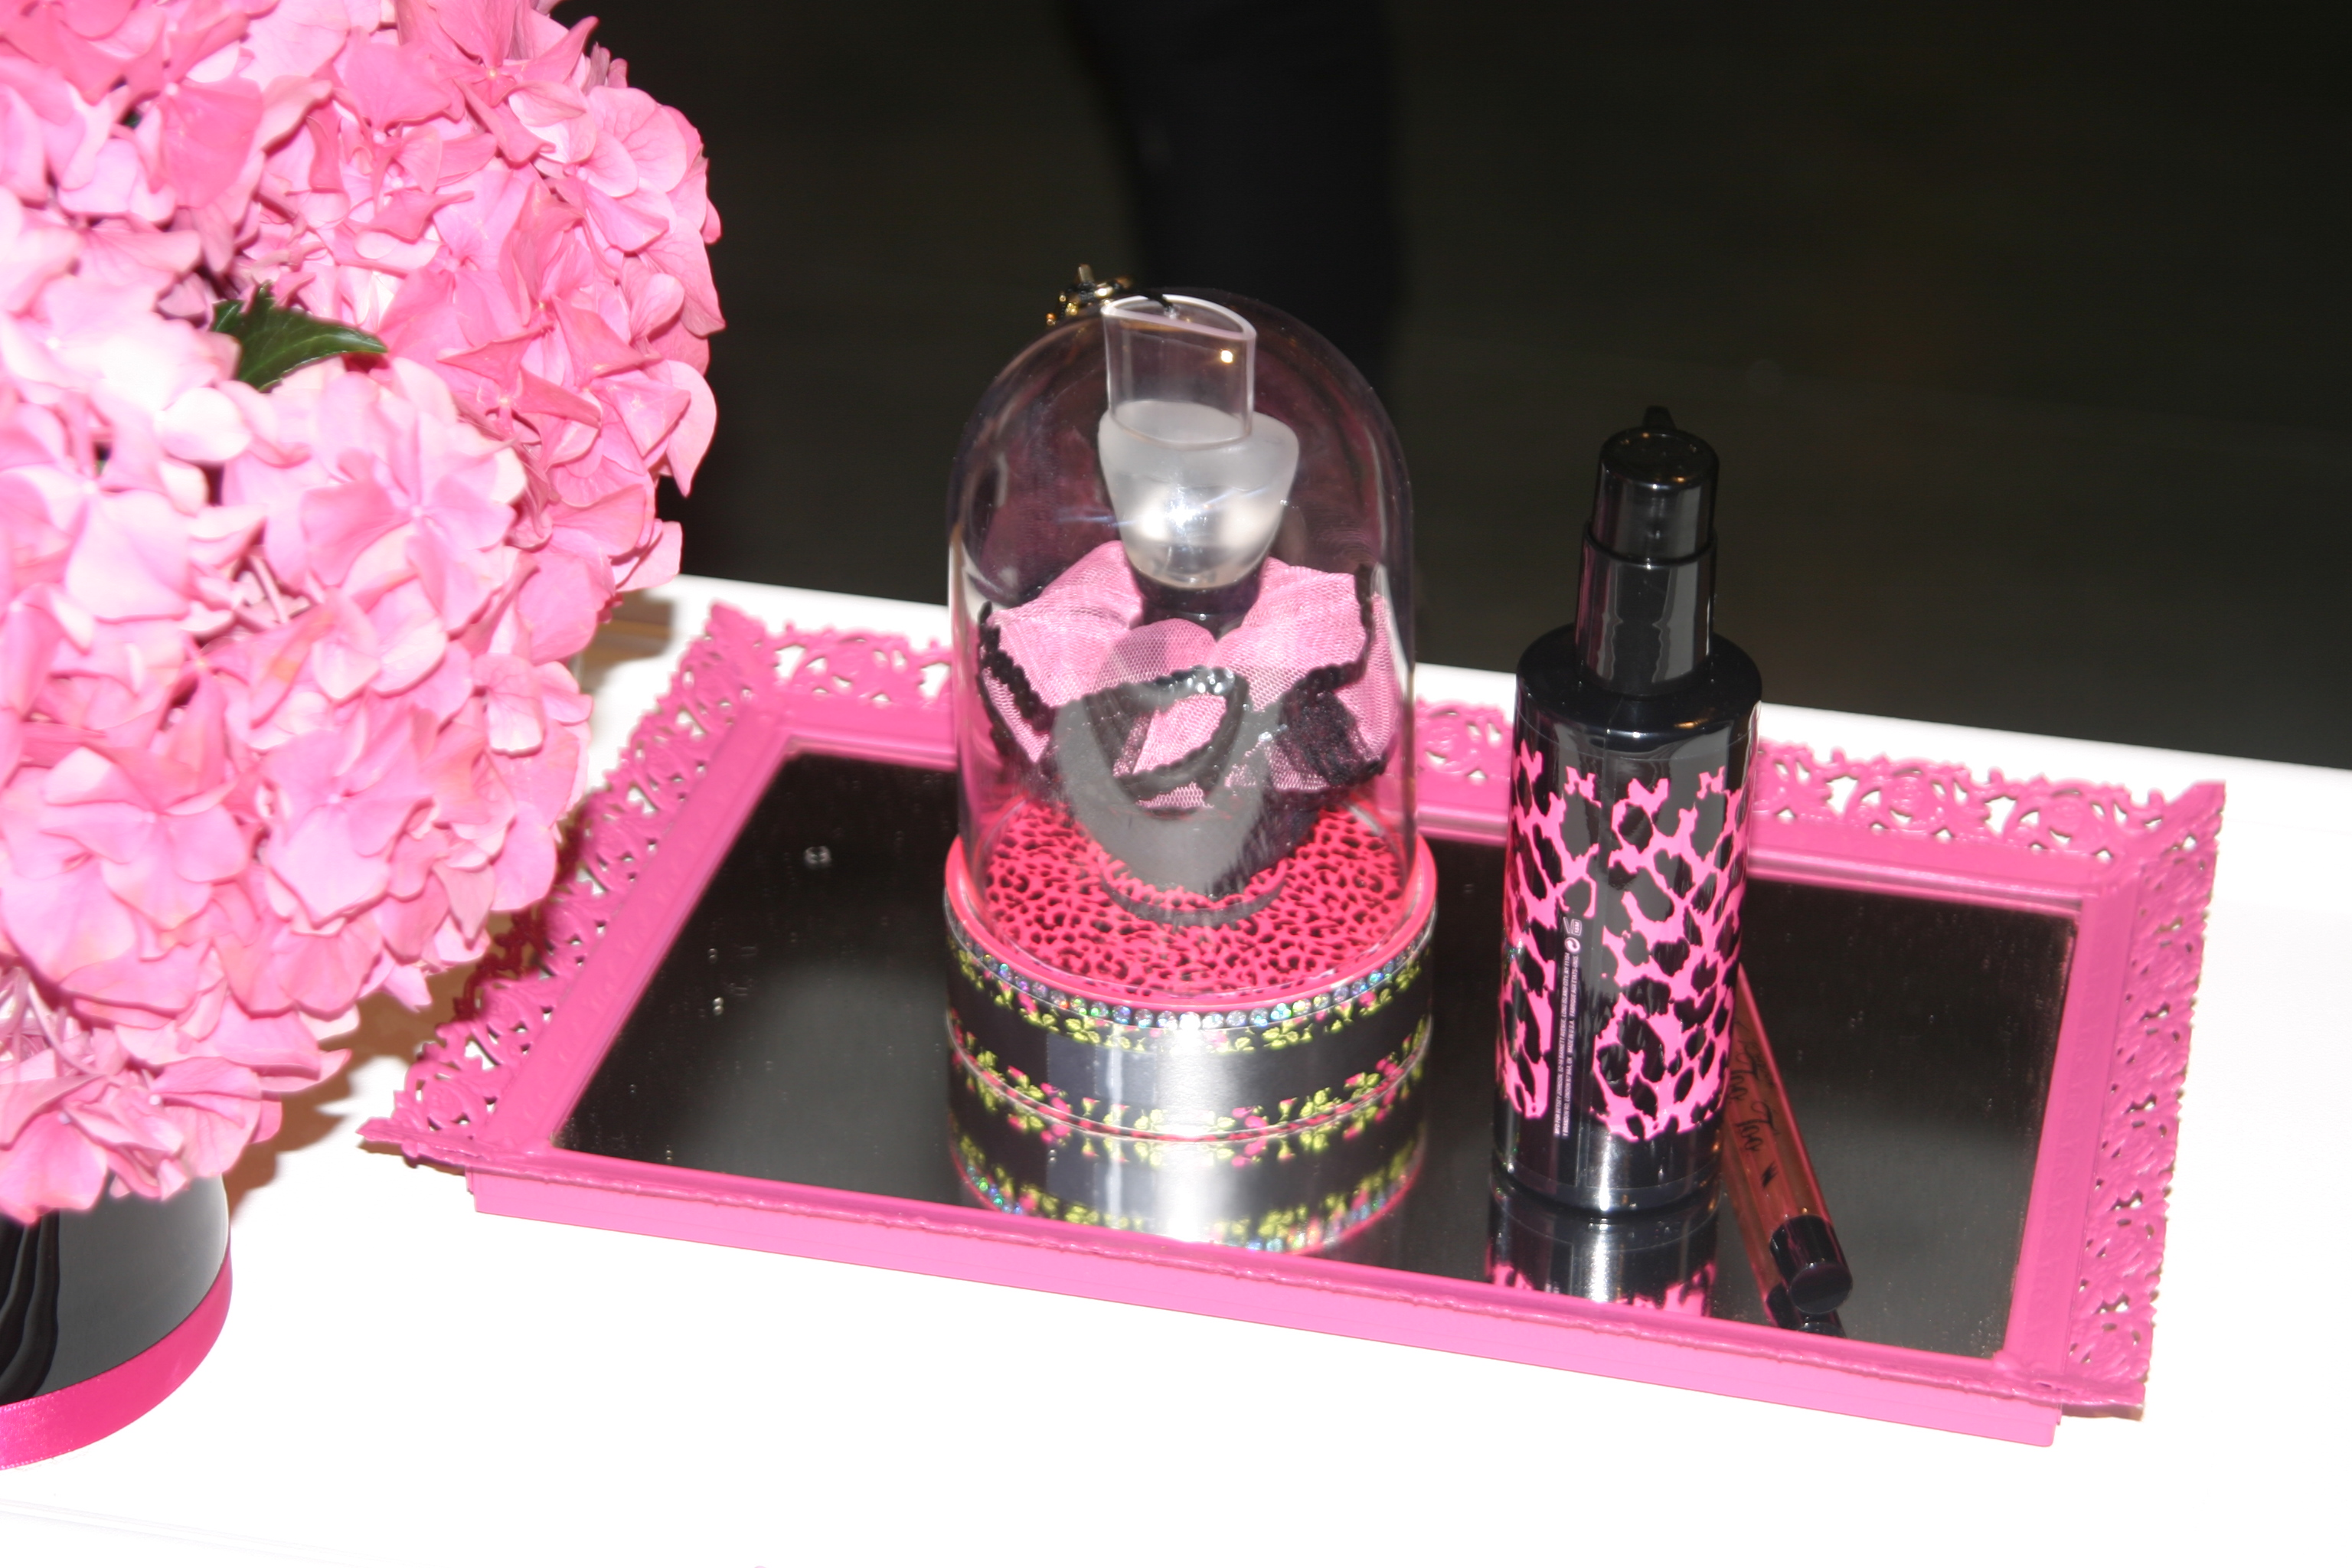 Betsey Johnson Too Too perfume event preview